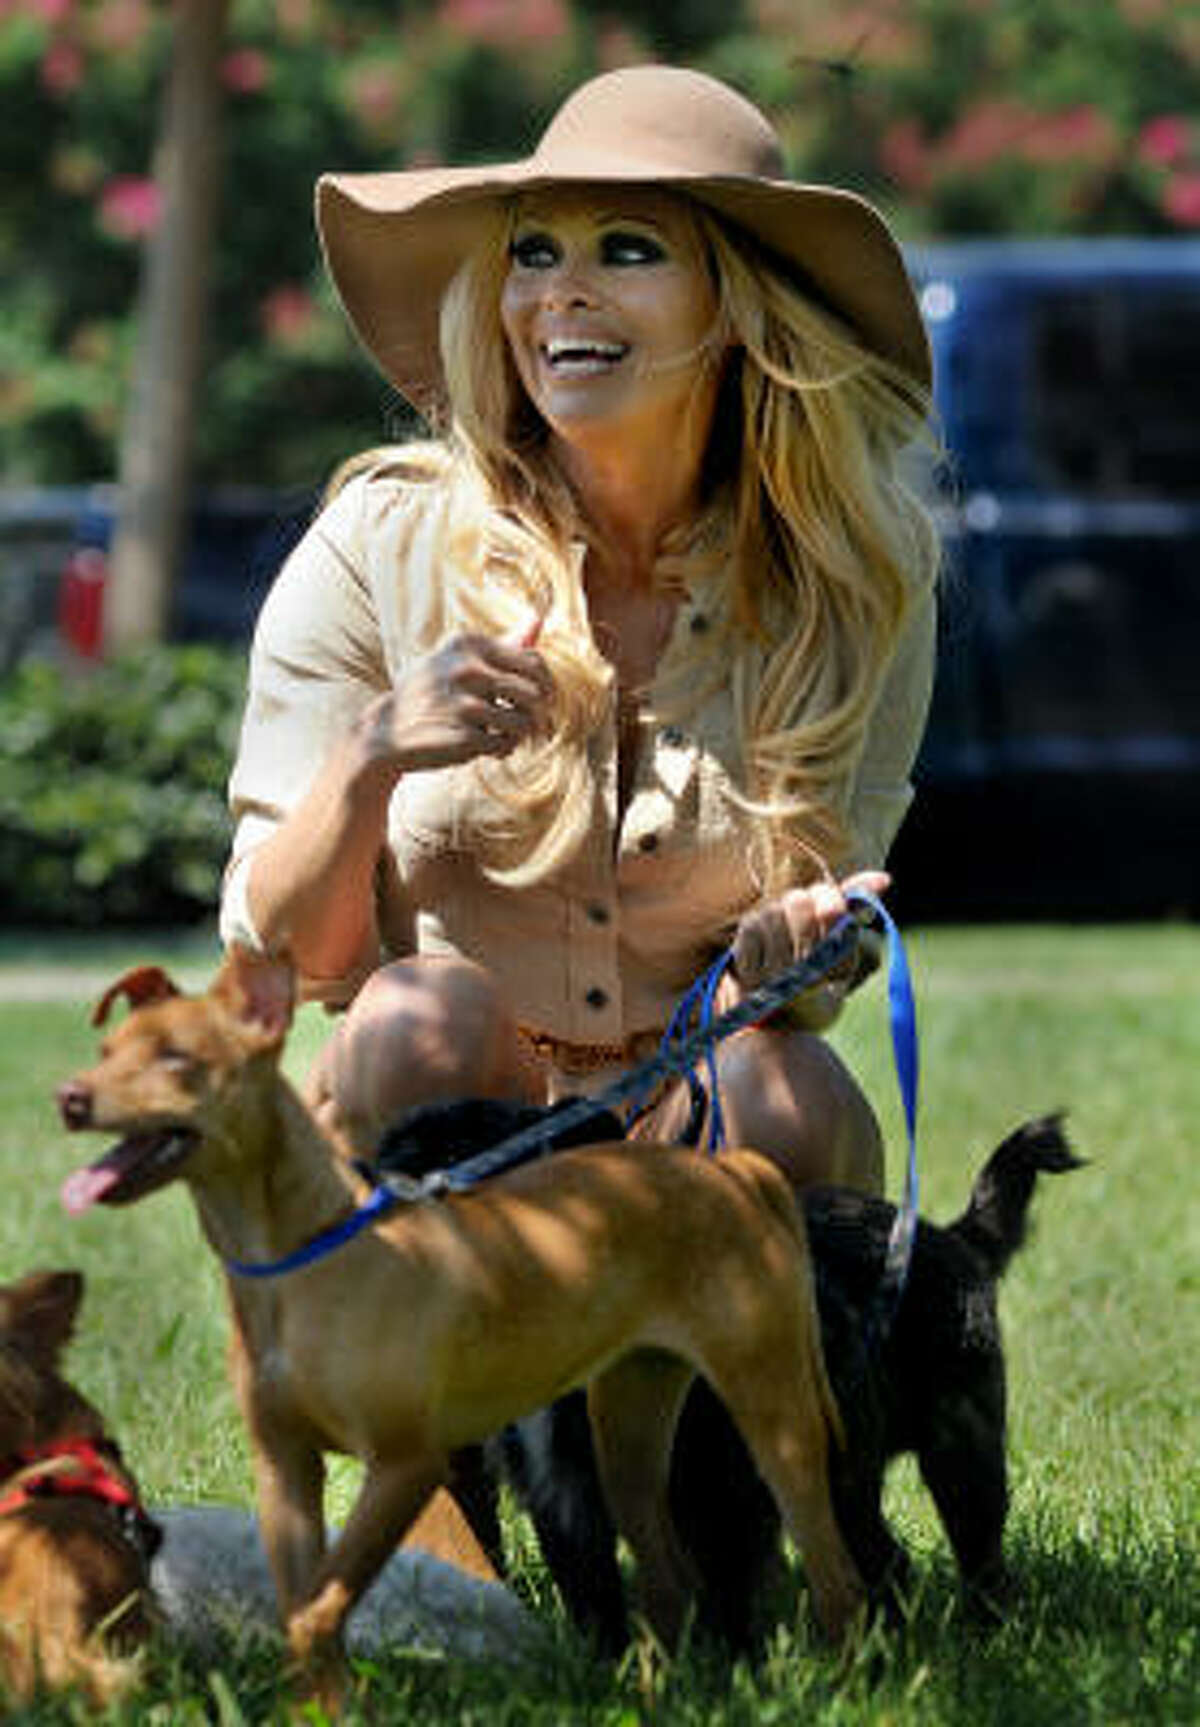 Actress Pamela Anderson takes several dogs for a walk on Monday, Aug. 2, 2010, in New Orleans. Anderson was on hand to send off about 50 dogs that are being moved from Louisiana to Virginia who've been orphaned by the oil spill in the Gulf of Mexico. Anderson chose two dogs to adopt and take home herself.